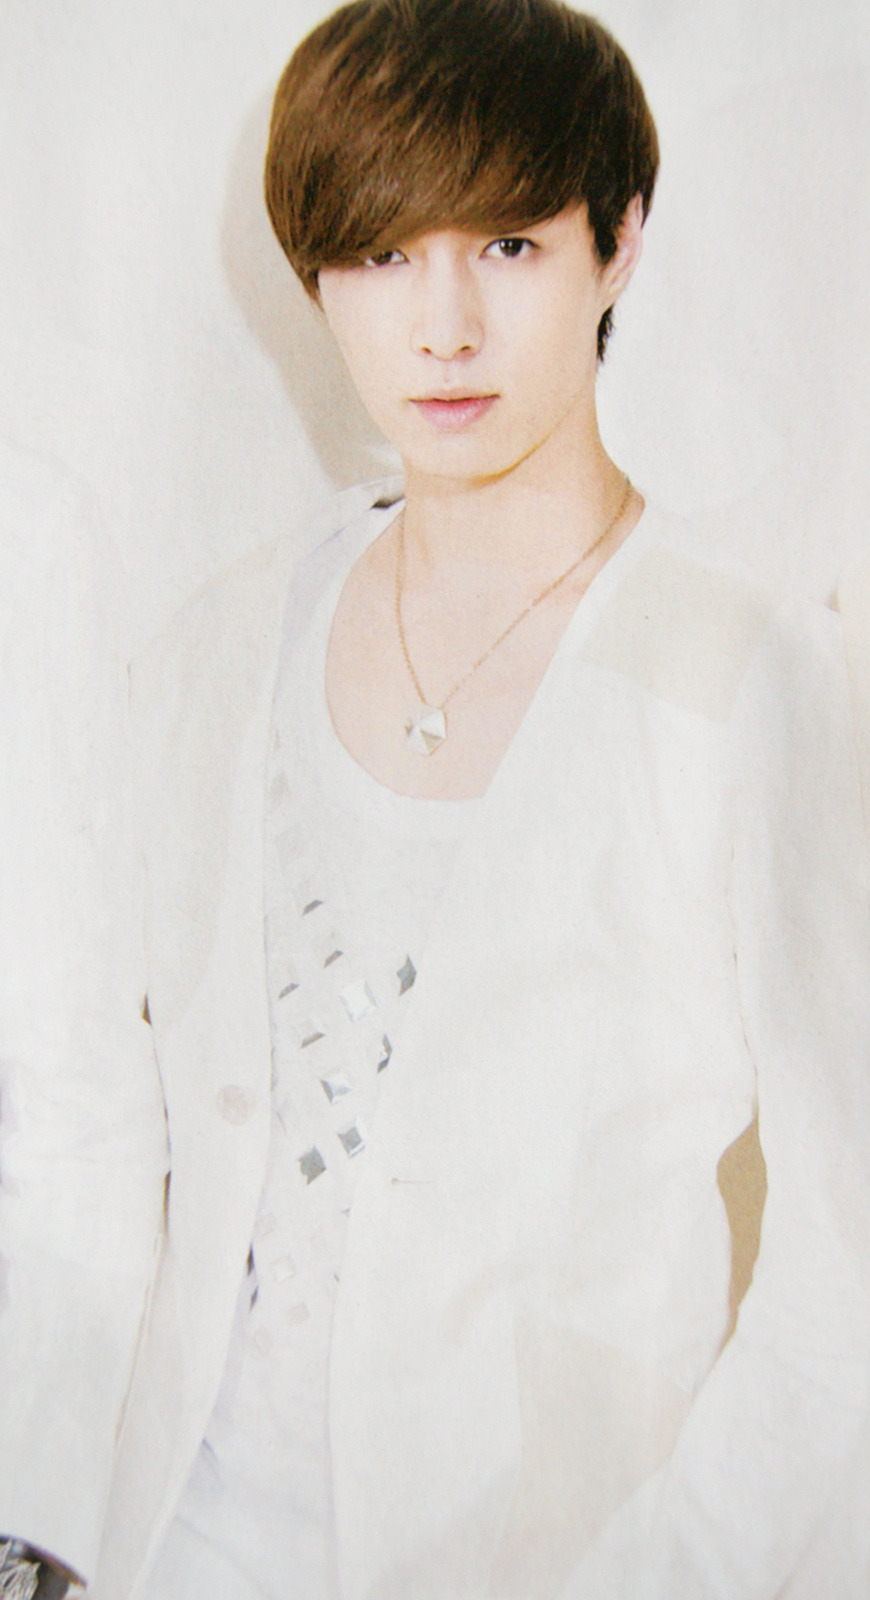 yixingindonesia:  [SCAN] LAY - MAGAZINE cr: nytiffany891020